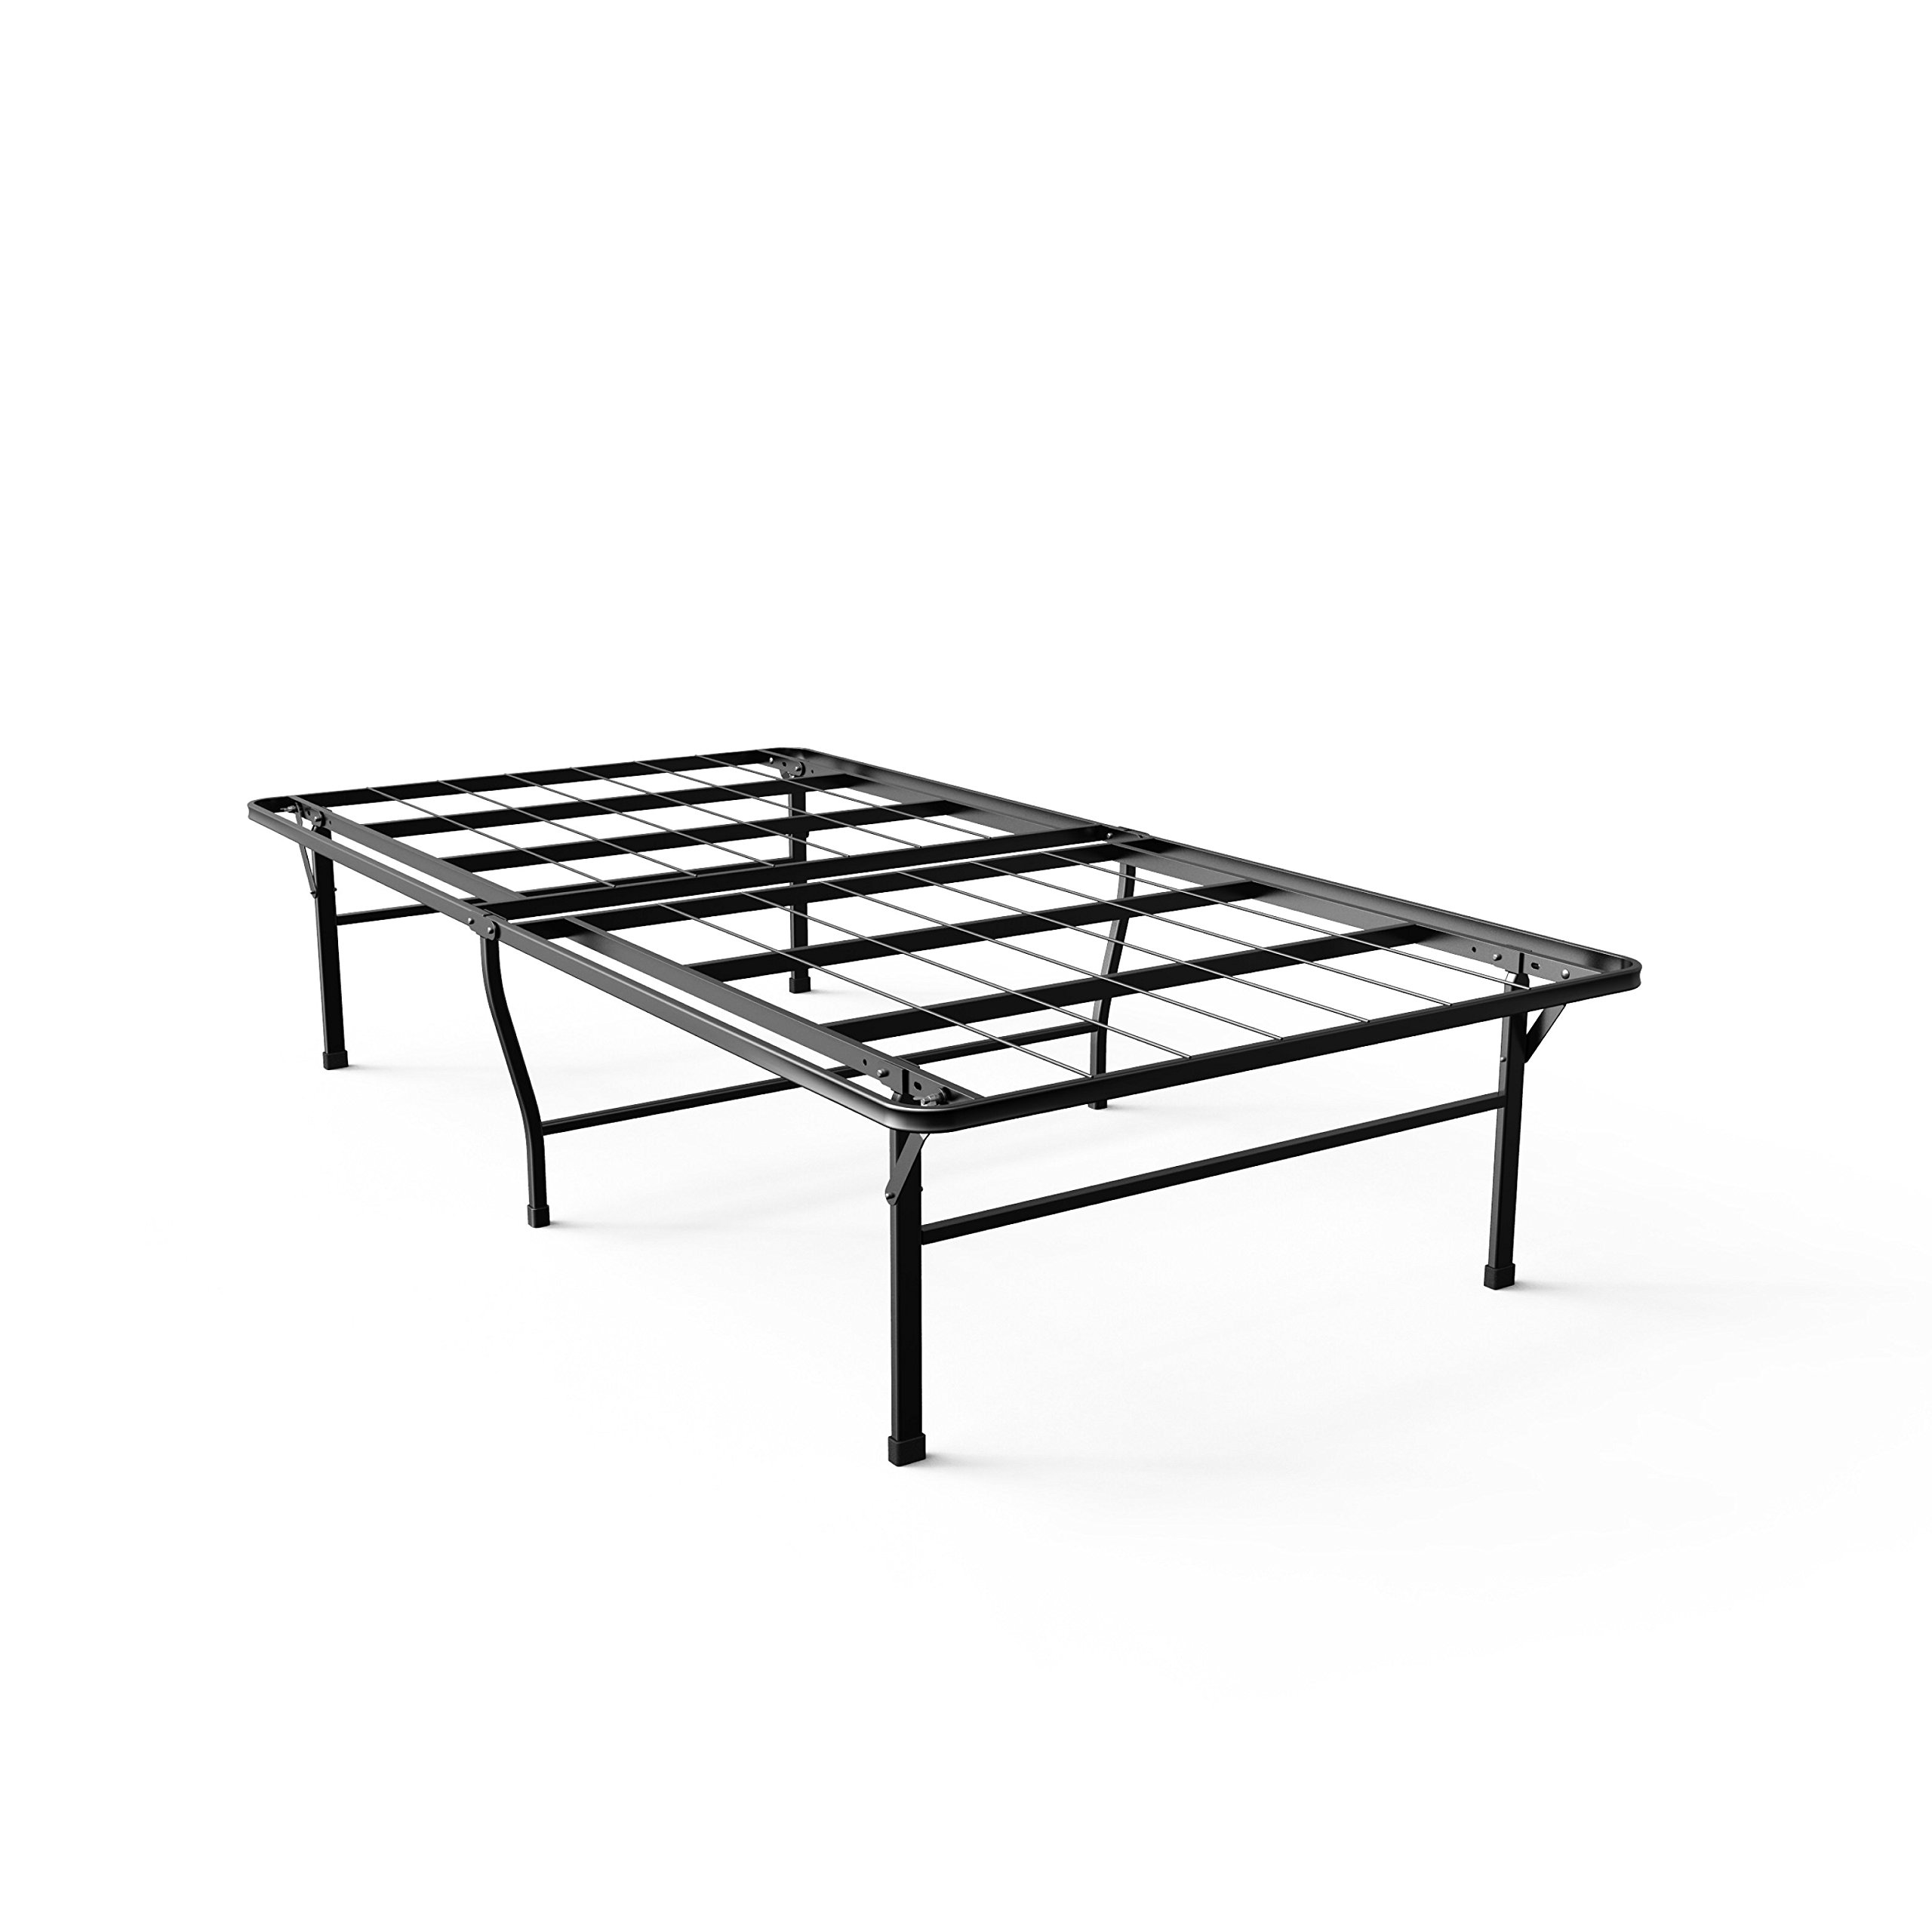 Zinus Gene 16 Inch SmartBase Deluxe Mattress Foundation / 2 Extra Inches high for Under-bed Storage / Platform Bed Frame / Box Spring Replacement / Strong / Sturdy / Quiet Noise-Free, Twin XL by Zinus